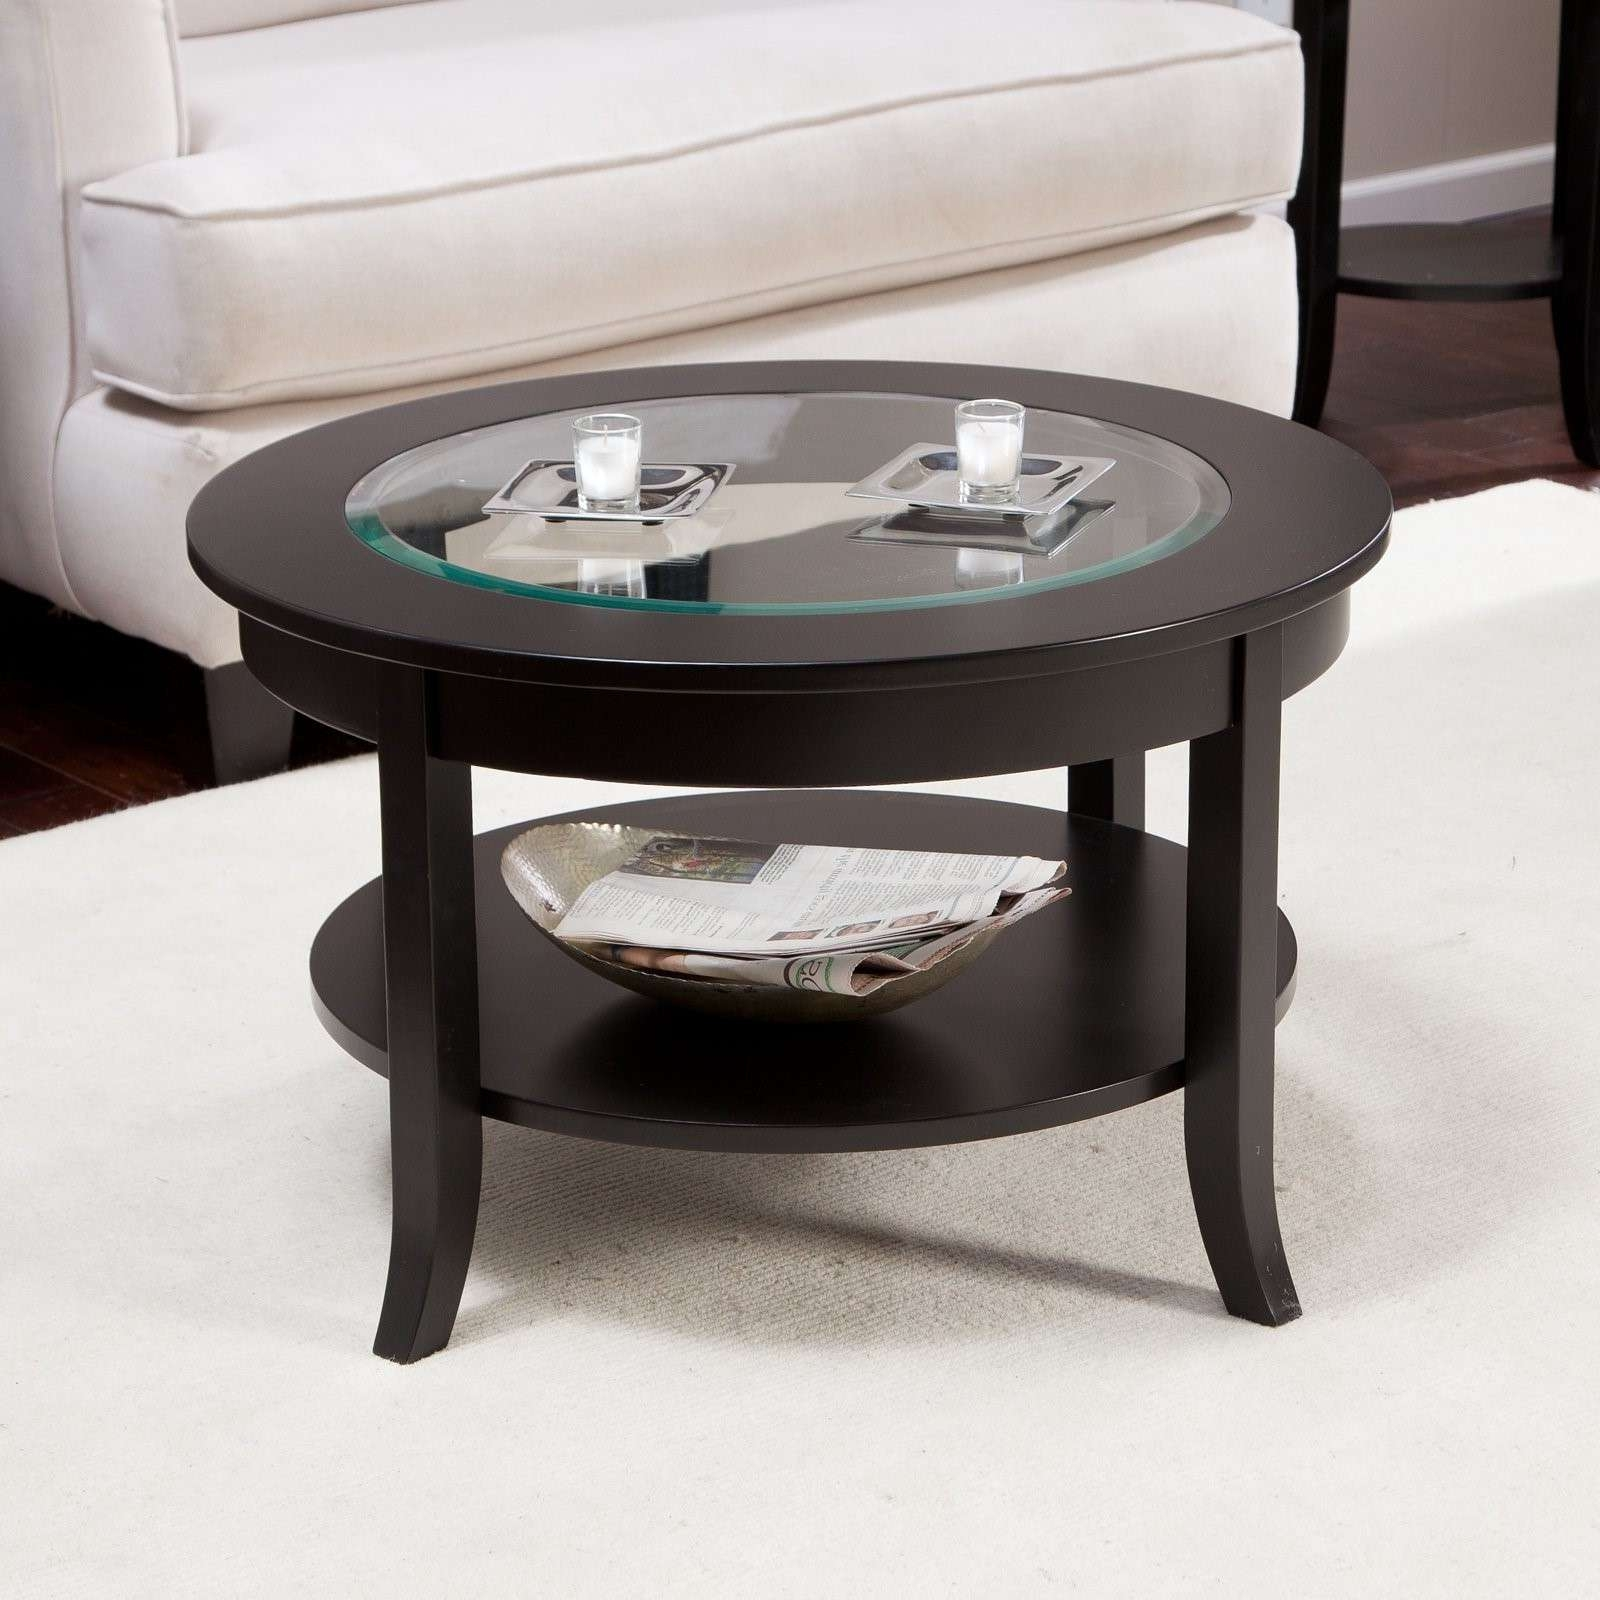 Black Coffee Table Modern 20 Photos Small Coffee Tables With Shelf